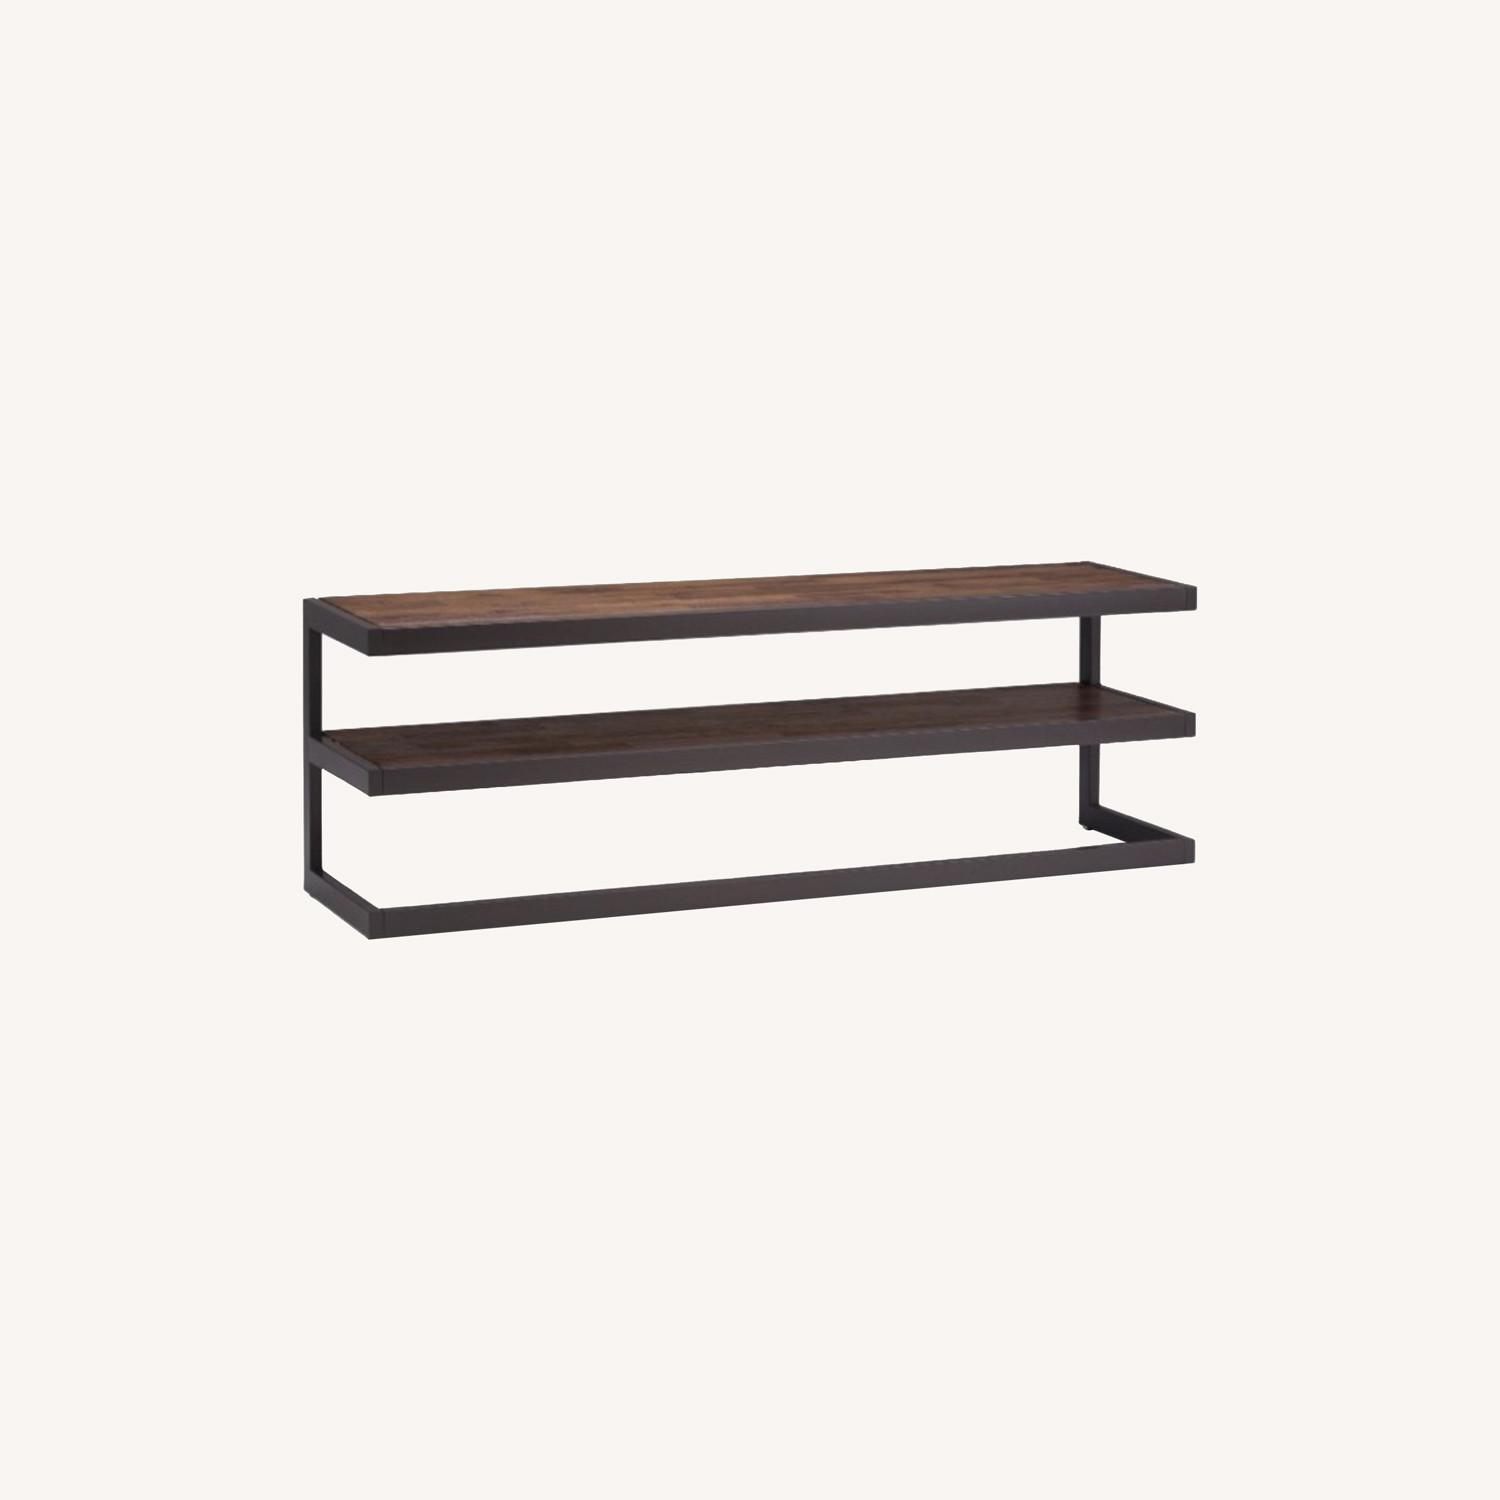 Target WyndenHall Acacia Wood Low TV Stand - image-0